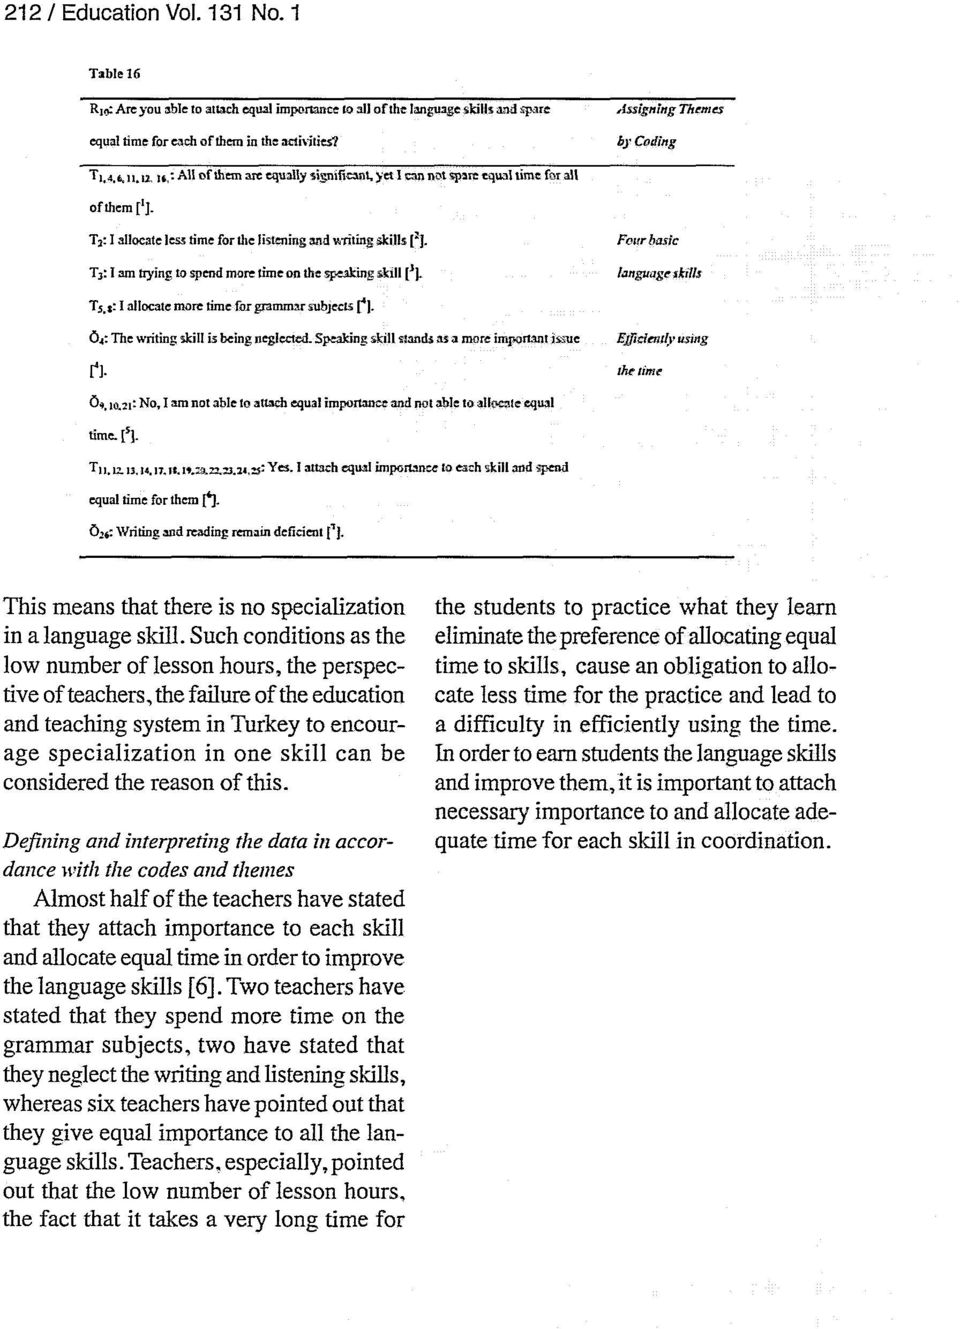 """T 2 : I allocate less time for tie listening and writing skills [ 1 ]. Four basic T3: I am trying to spend more time on the speaking s kill [fj. language rkills T 5."